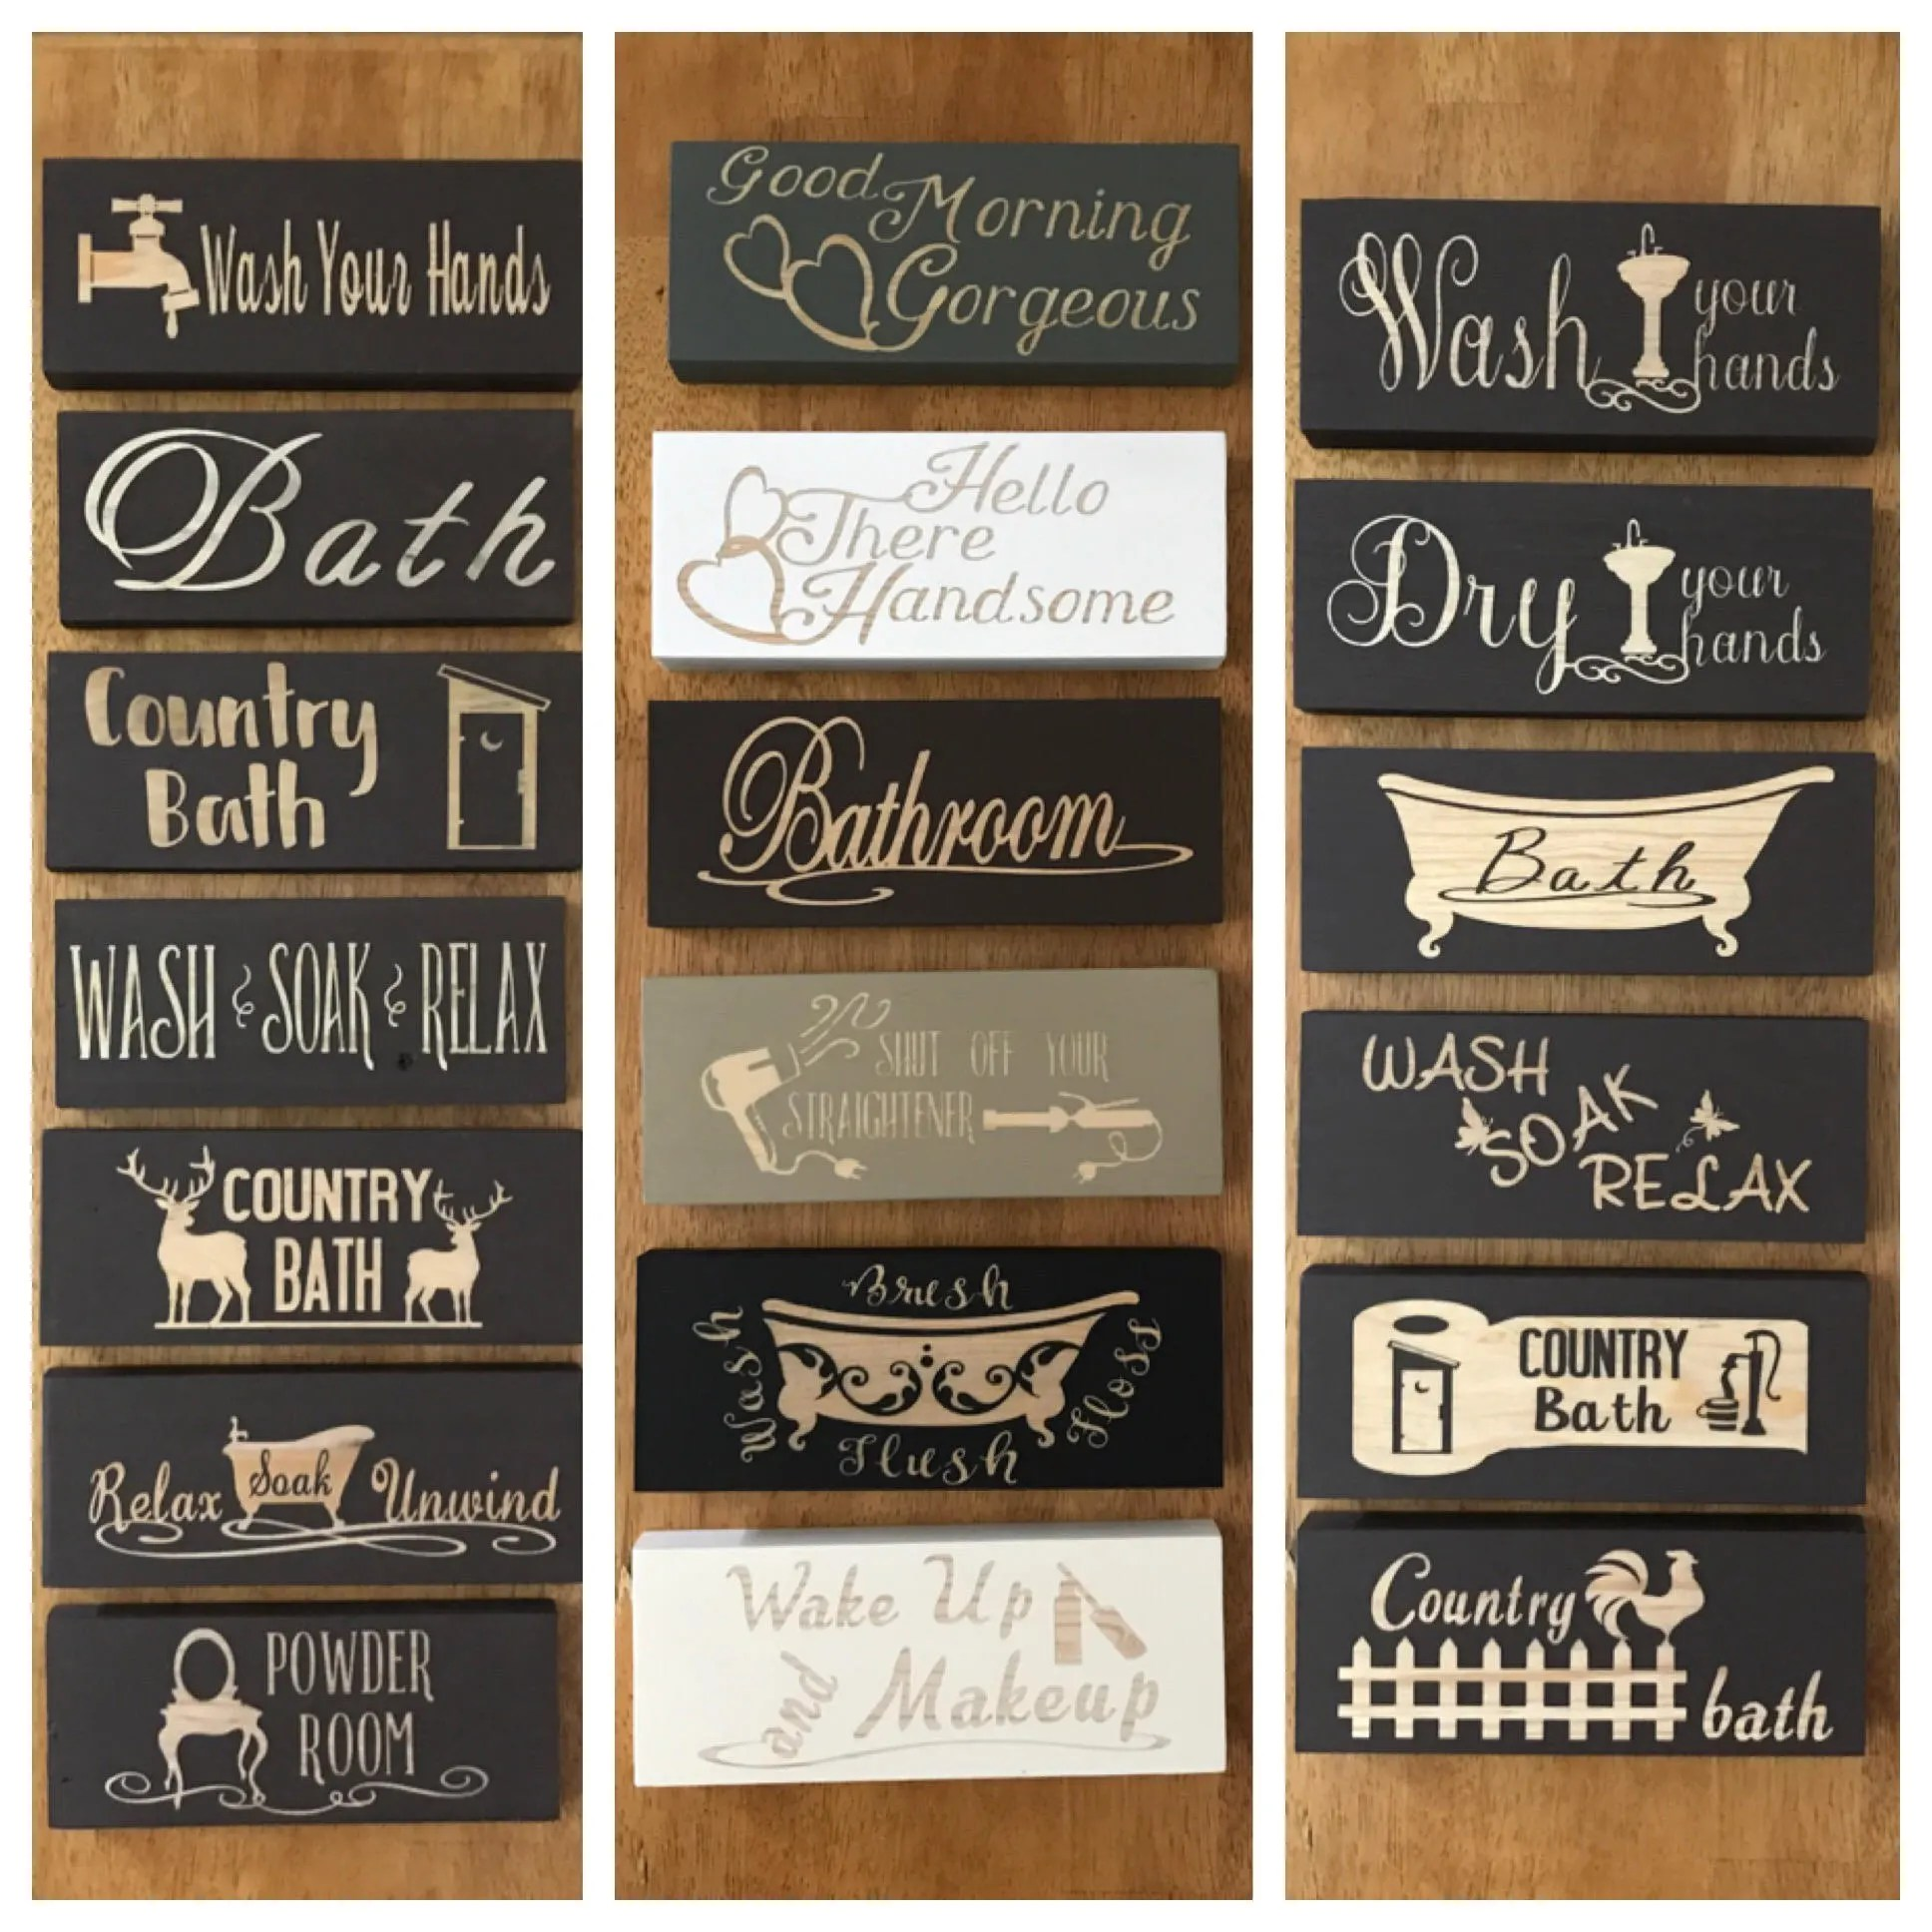 Bathroom Sign Bathroom Decor Bath Sign Wood Block Sign